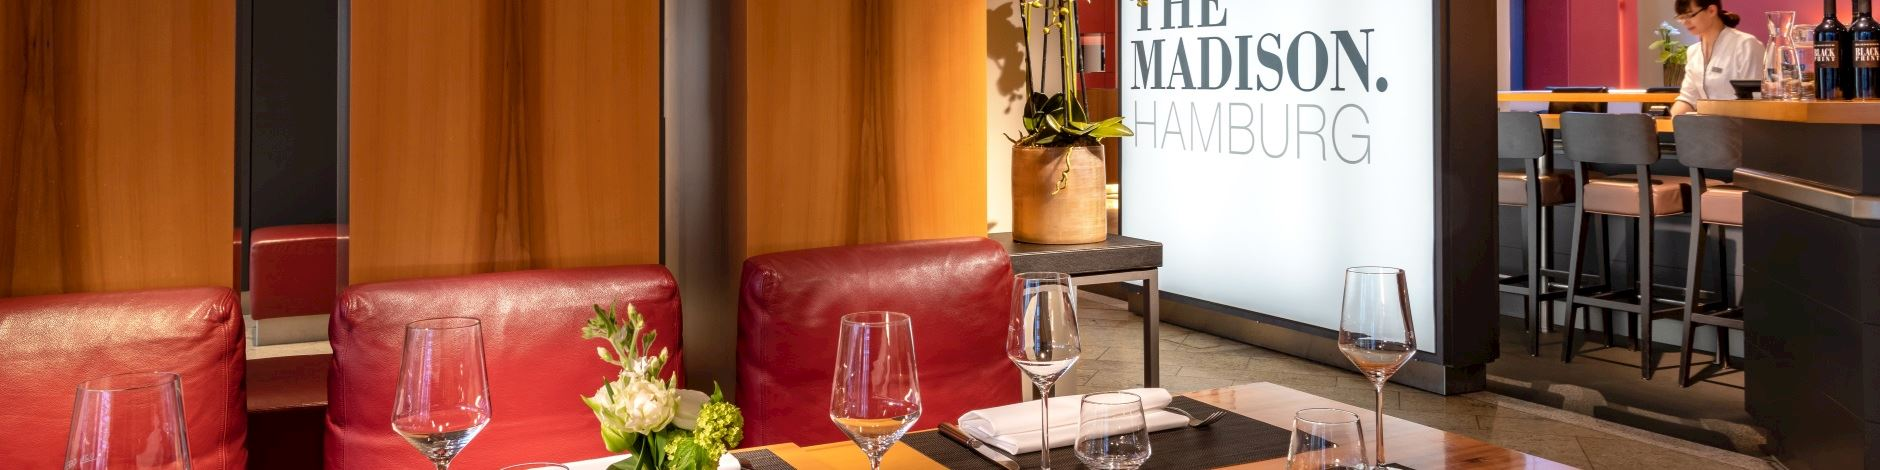 marleys-restaurant-im-madison-hotel-hamburg